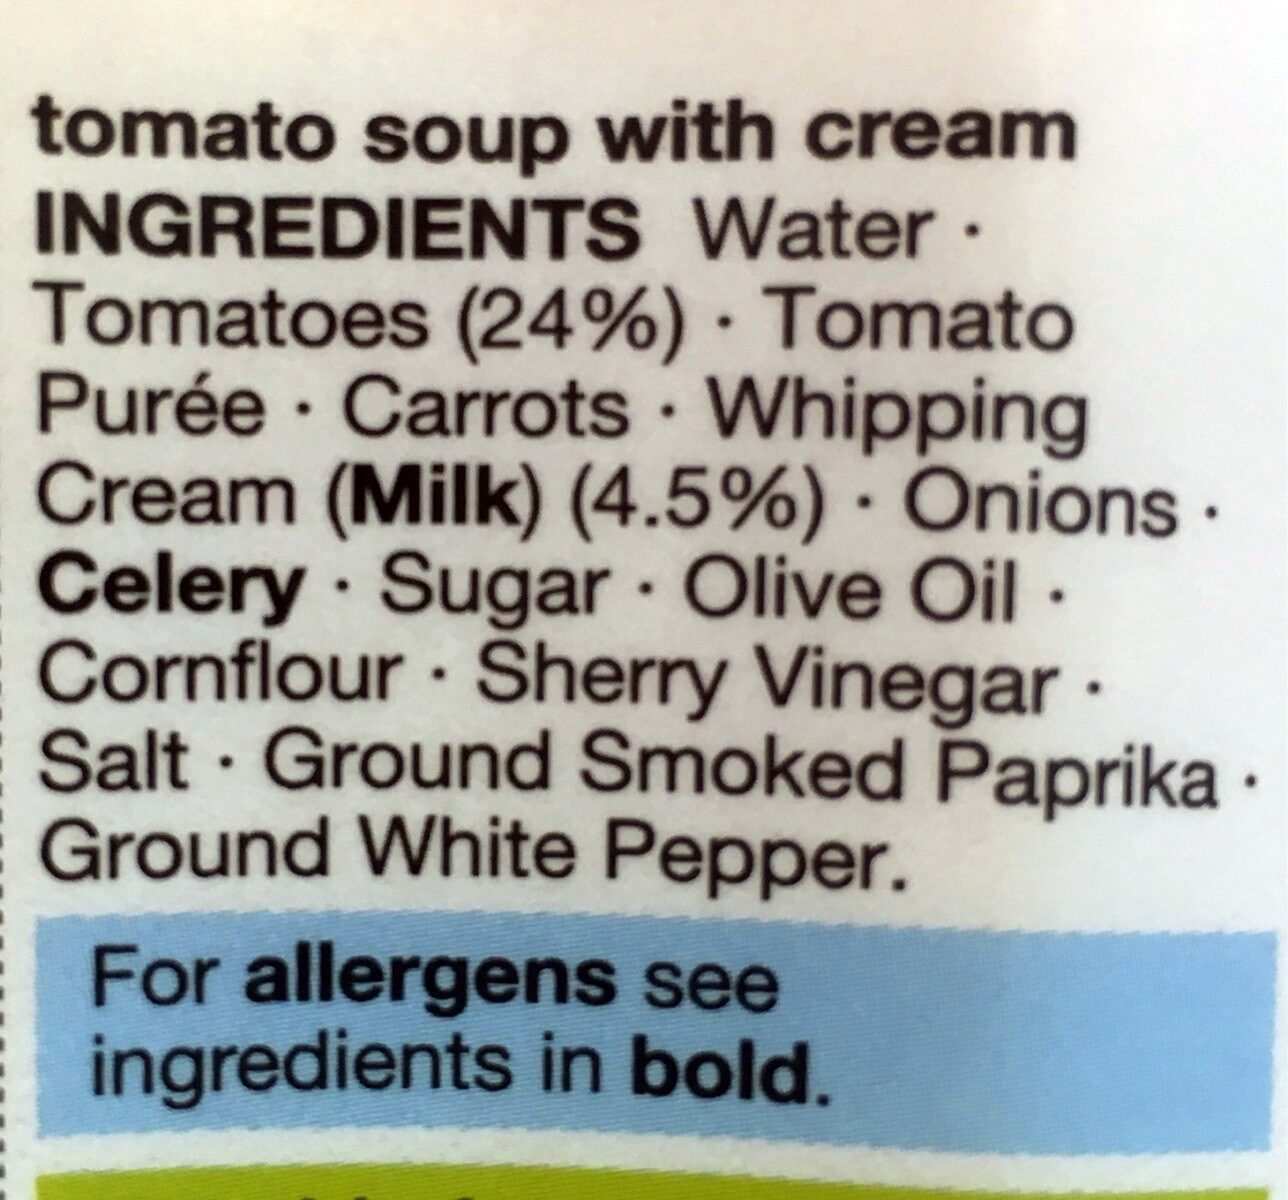 Cream Of Tomato Soup - Ingredients